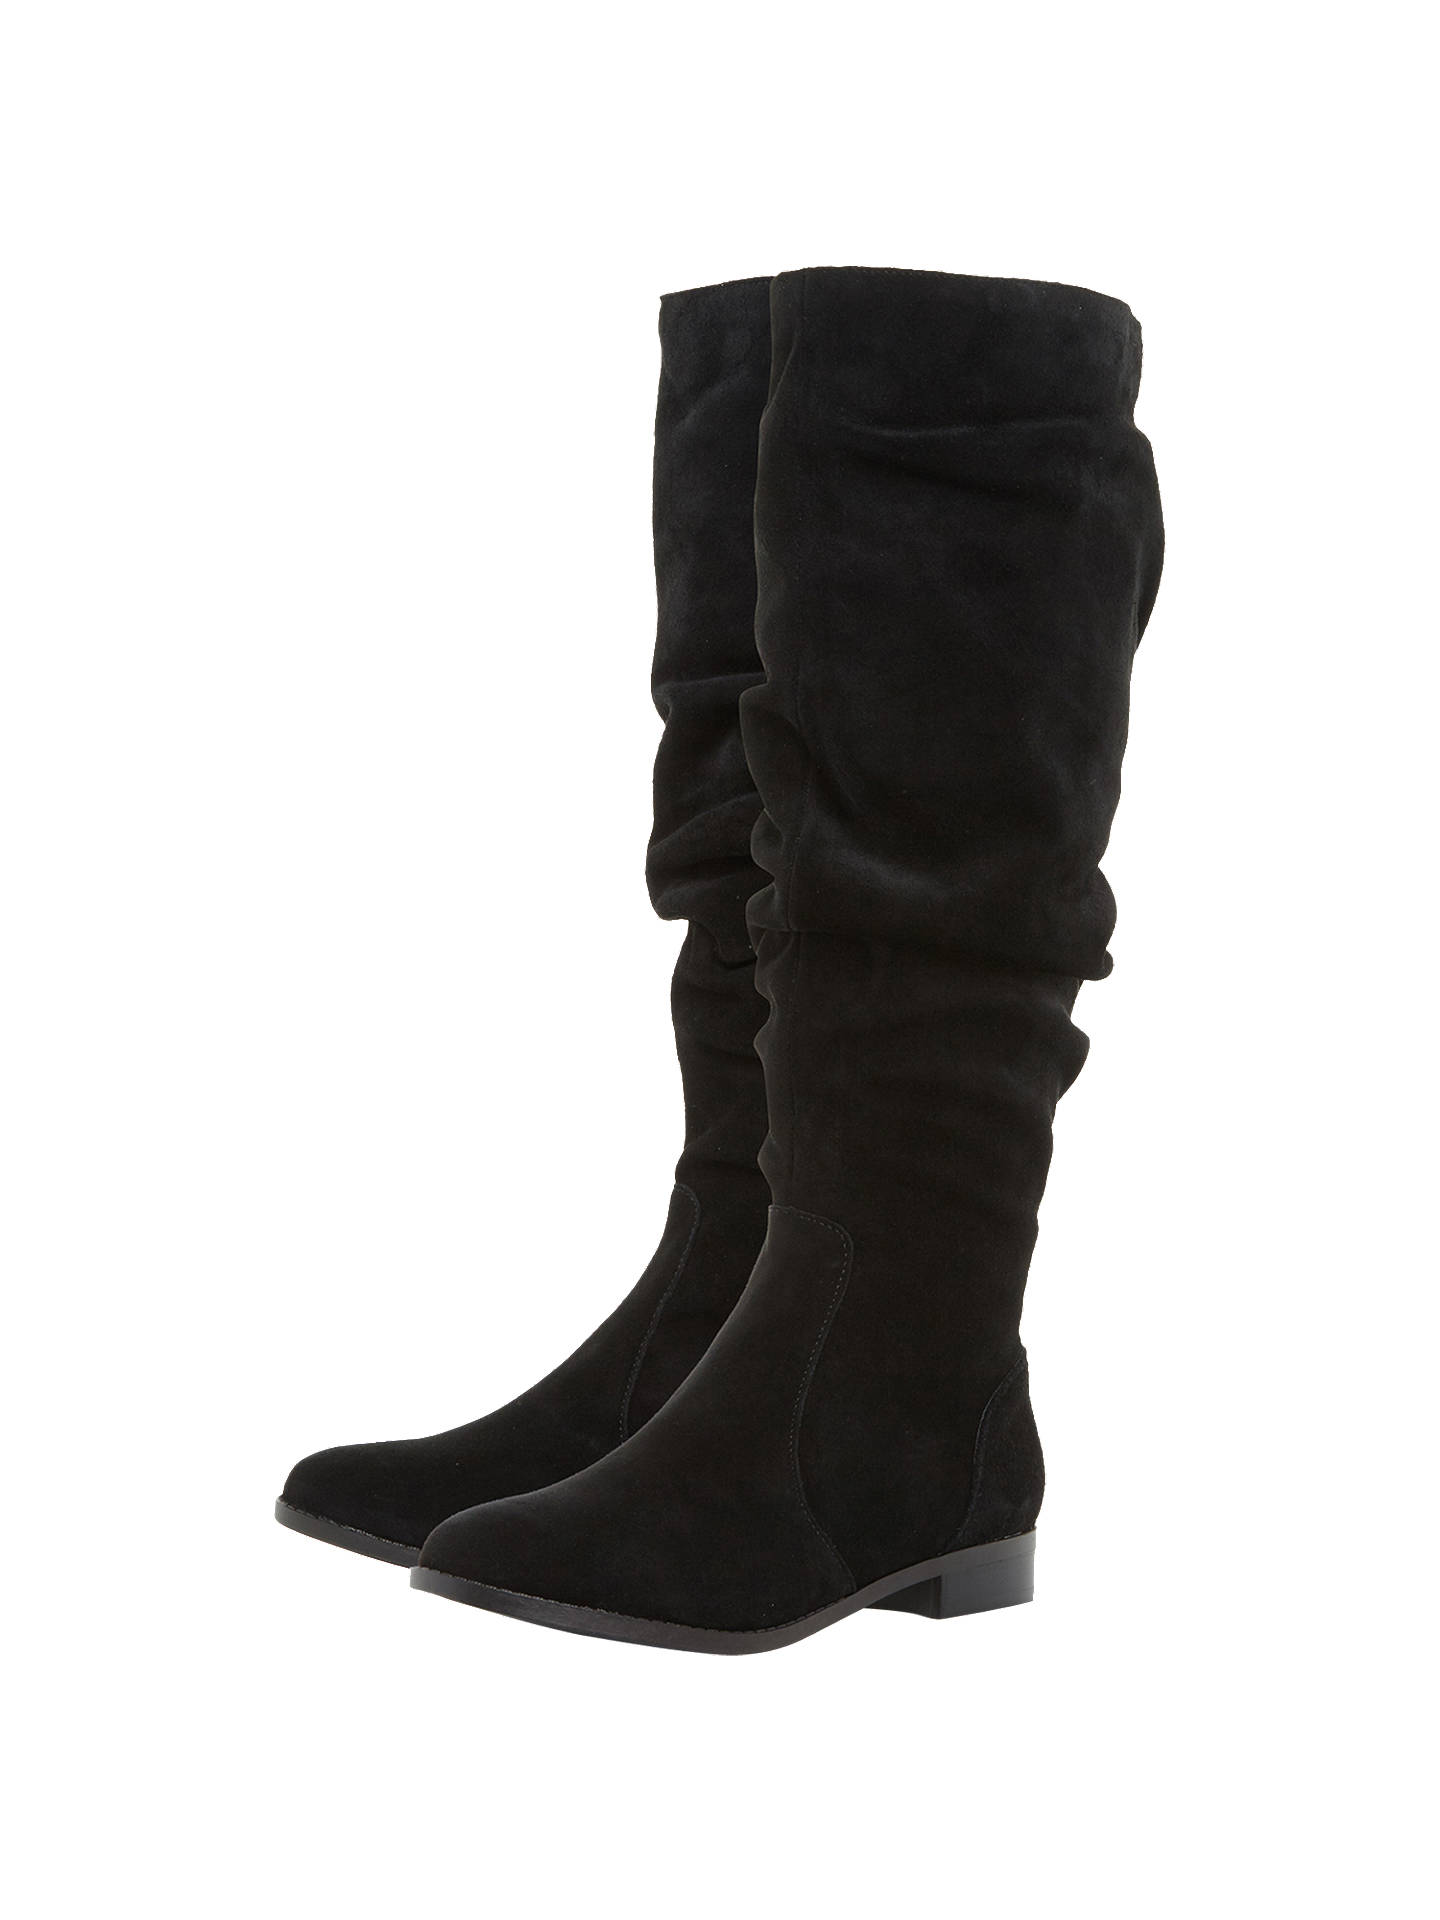 BuySteve Madden Beacon Ruched Knee High Boots, Black Suede, 3 Online at johnlewis.com